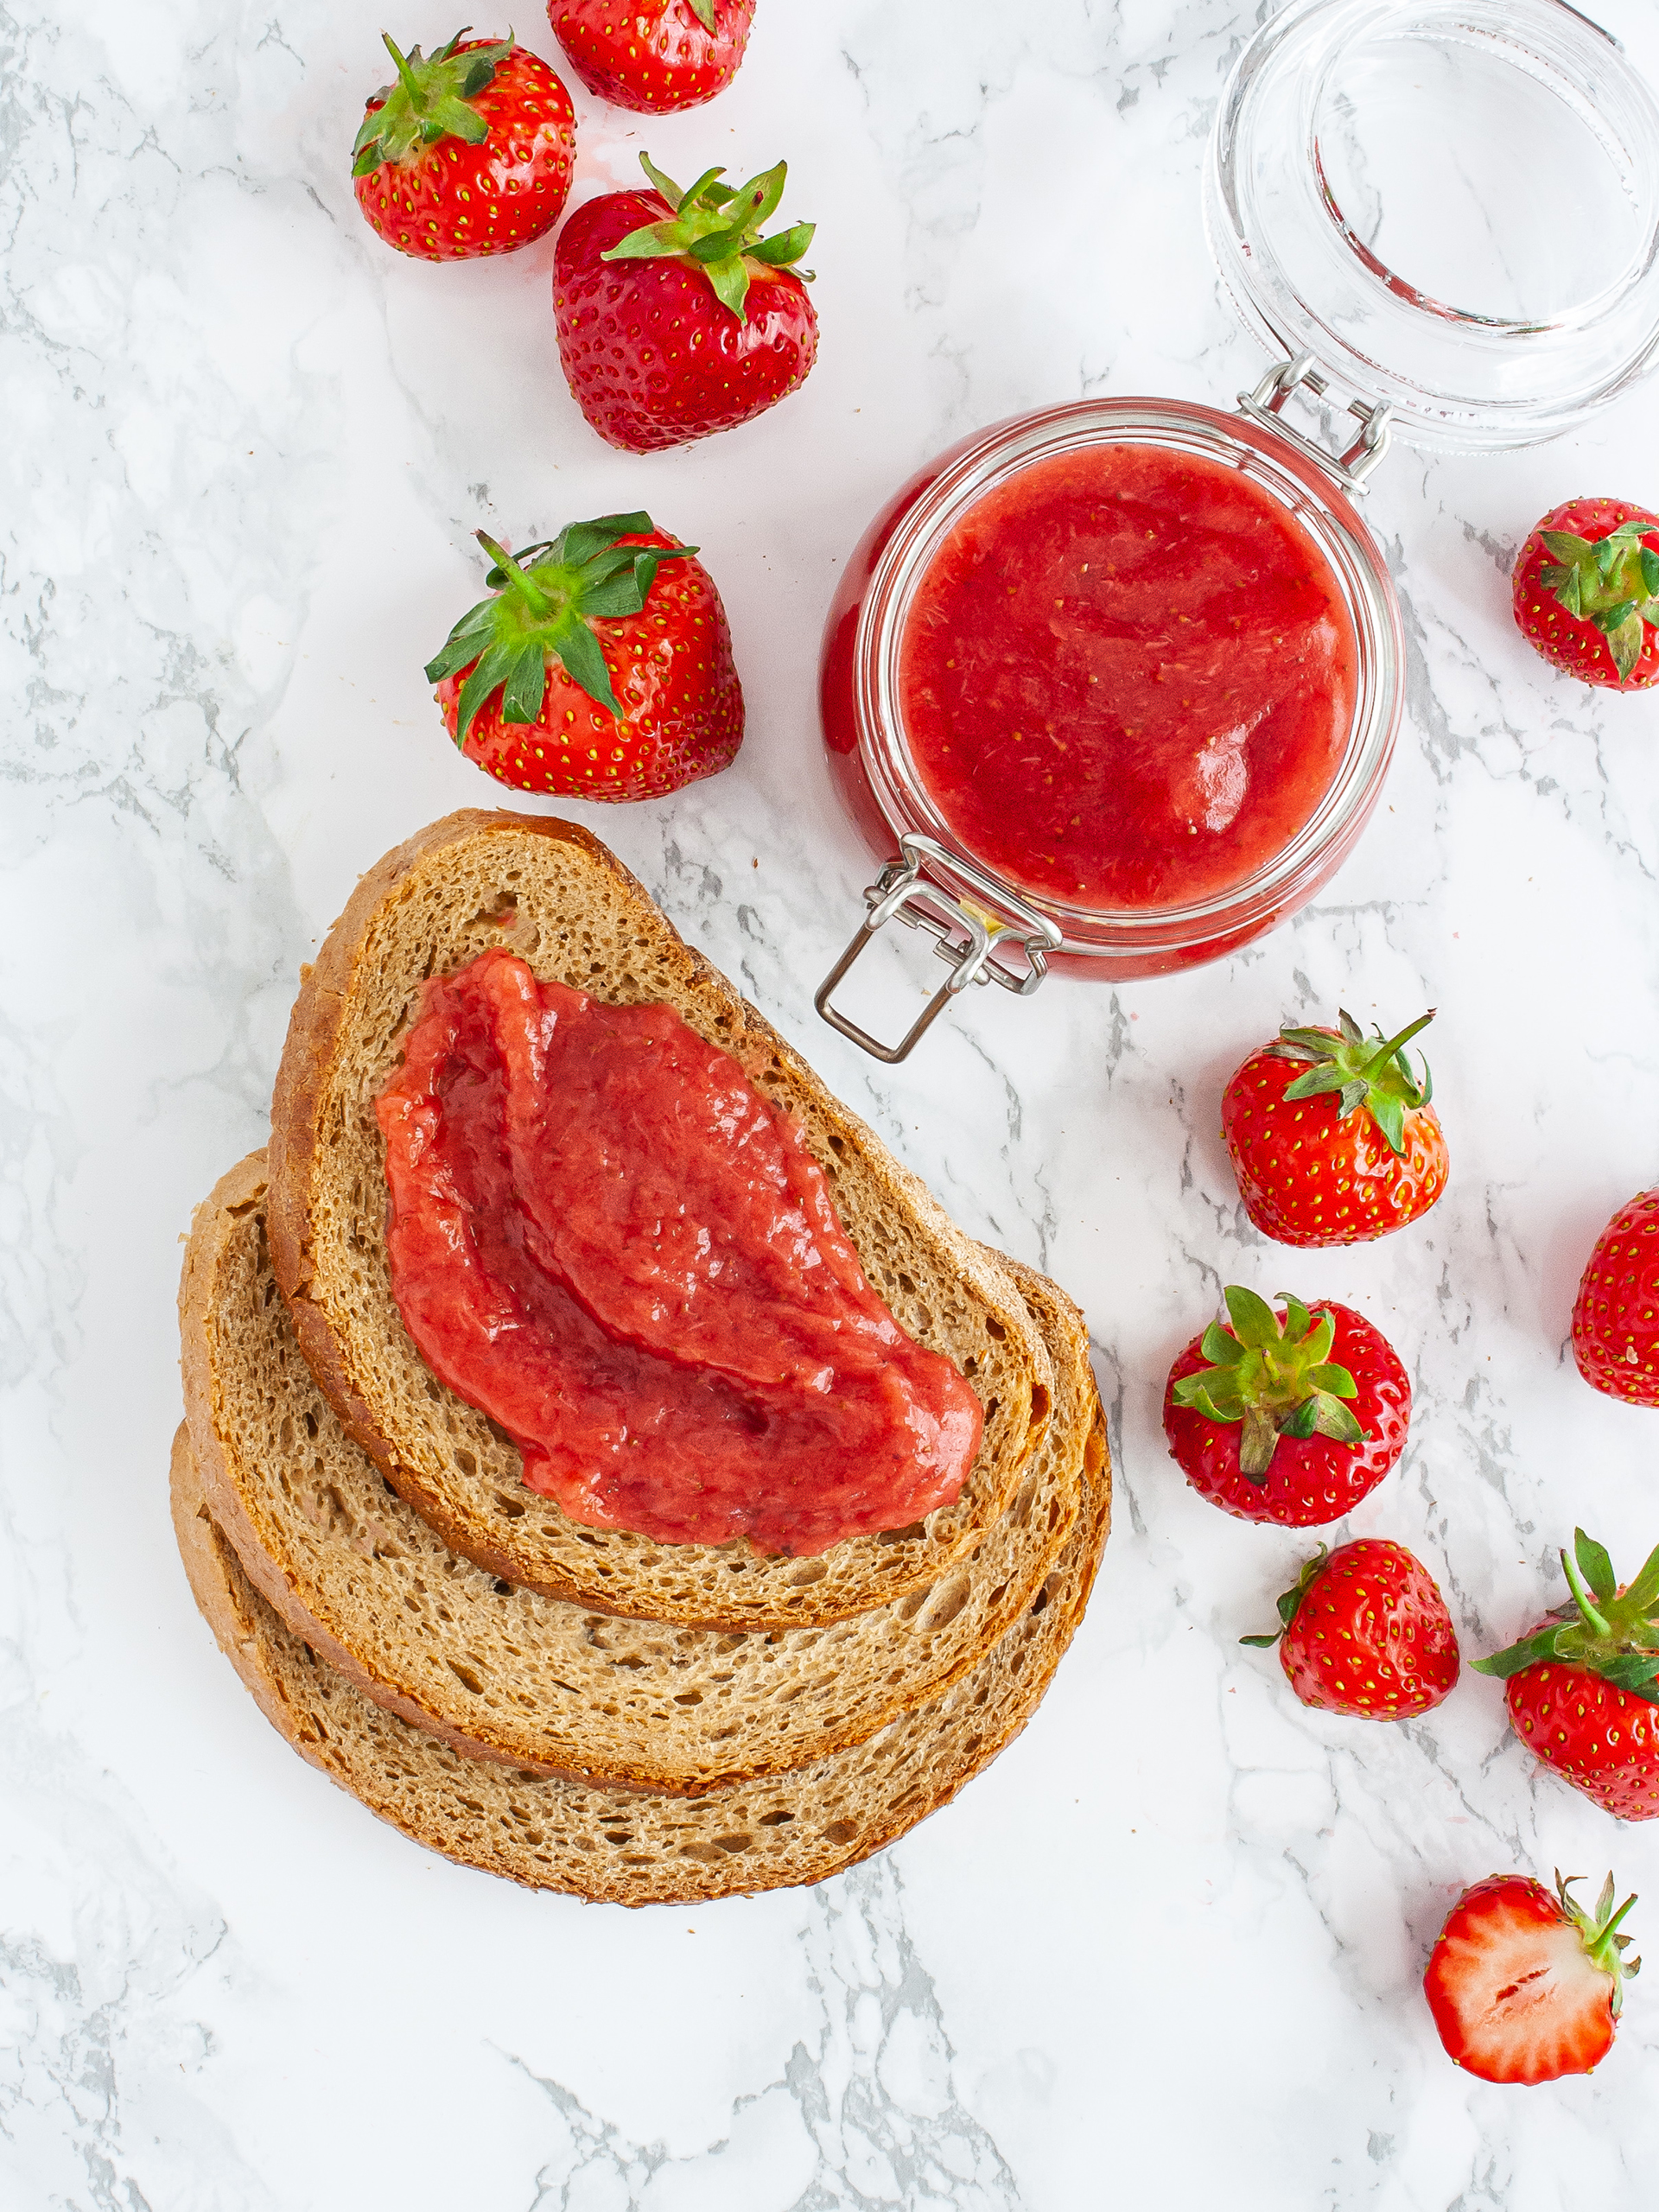 Sugar Free Strawberry Jam without Pectin